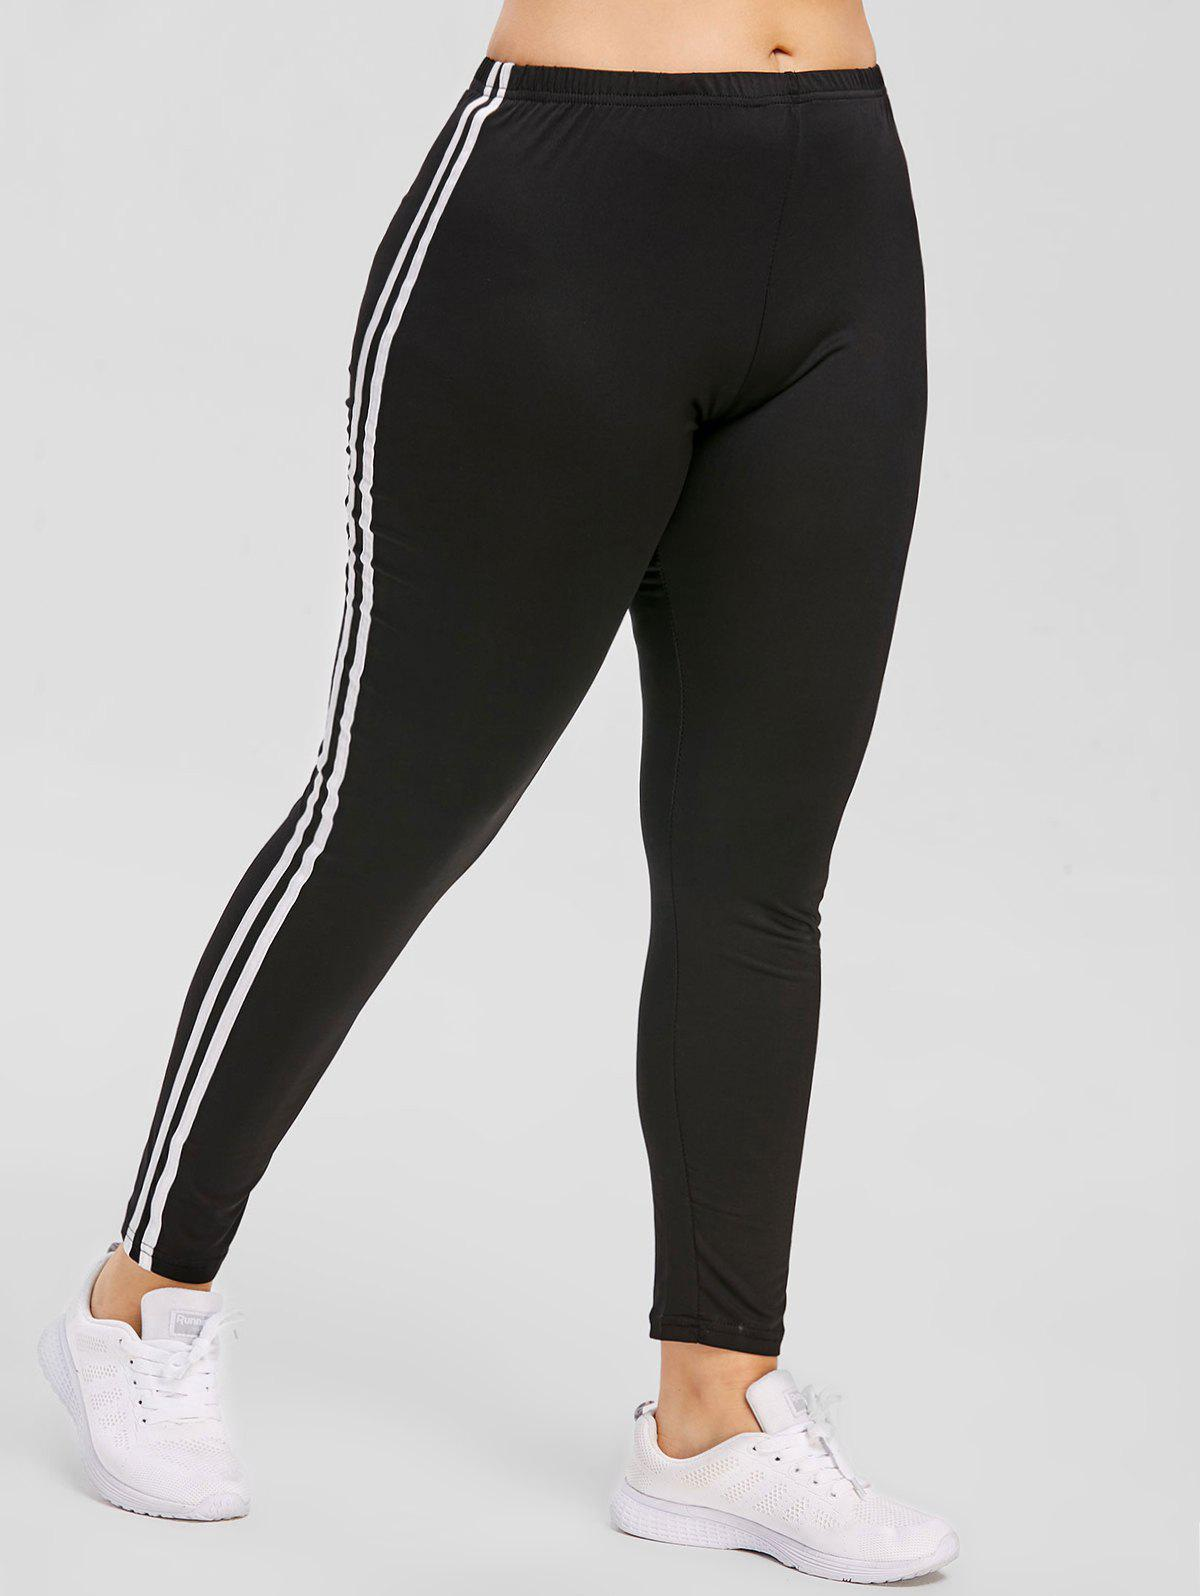 4839d859f4c39 45% OFF] Side Striped Insert Plus Size Elastic Waist Leggings | Rosegal